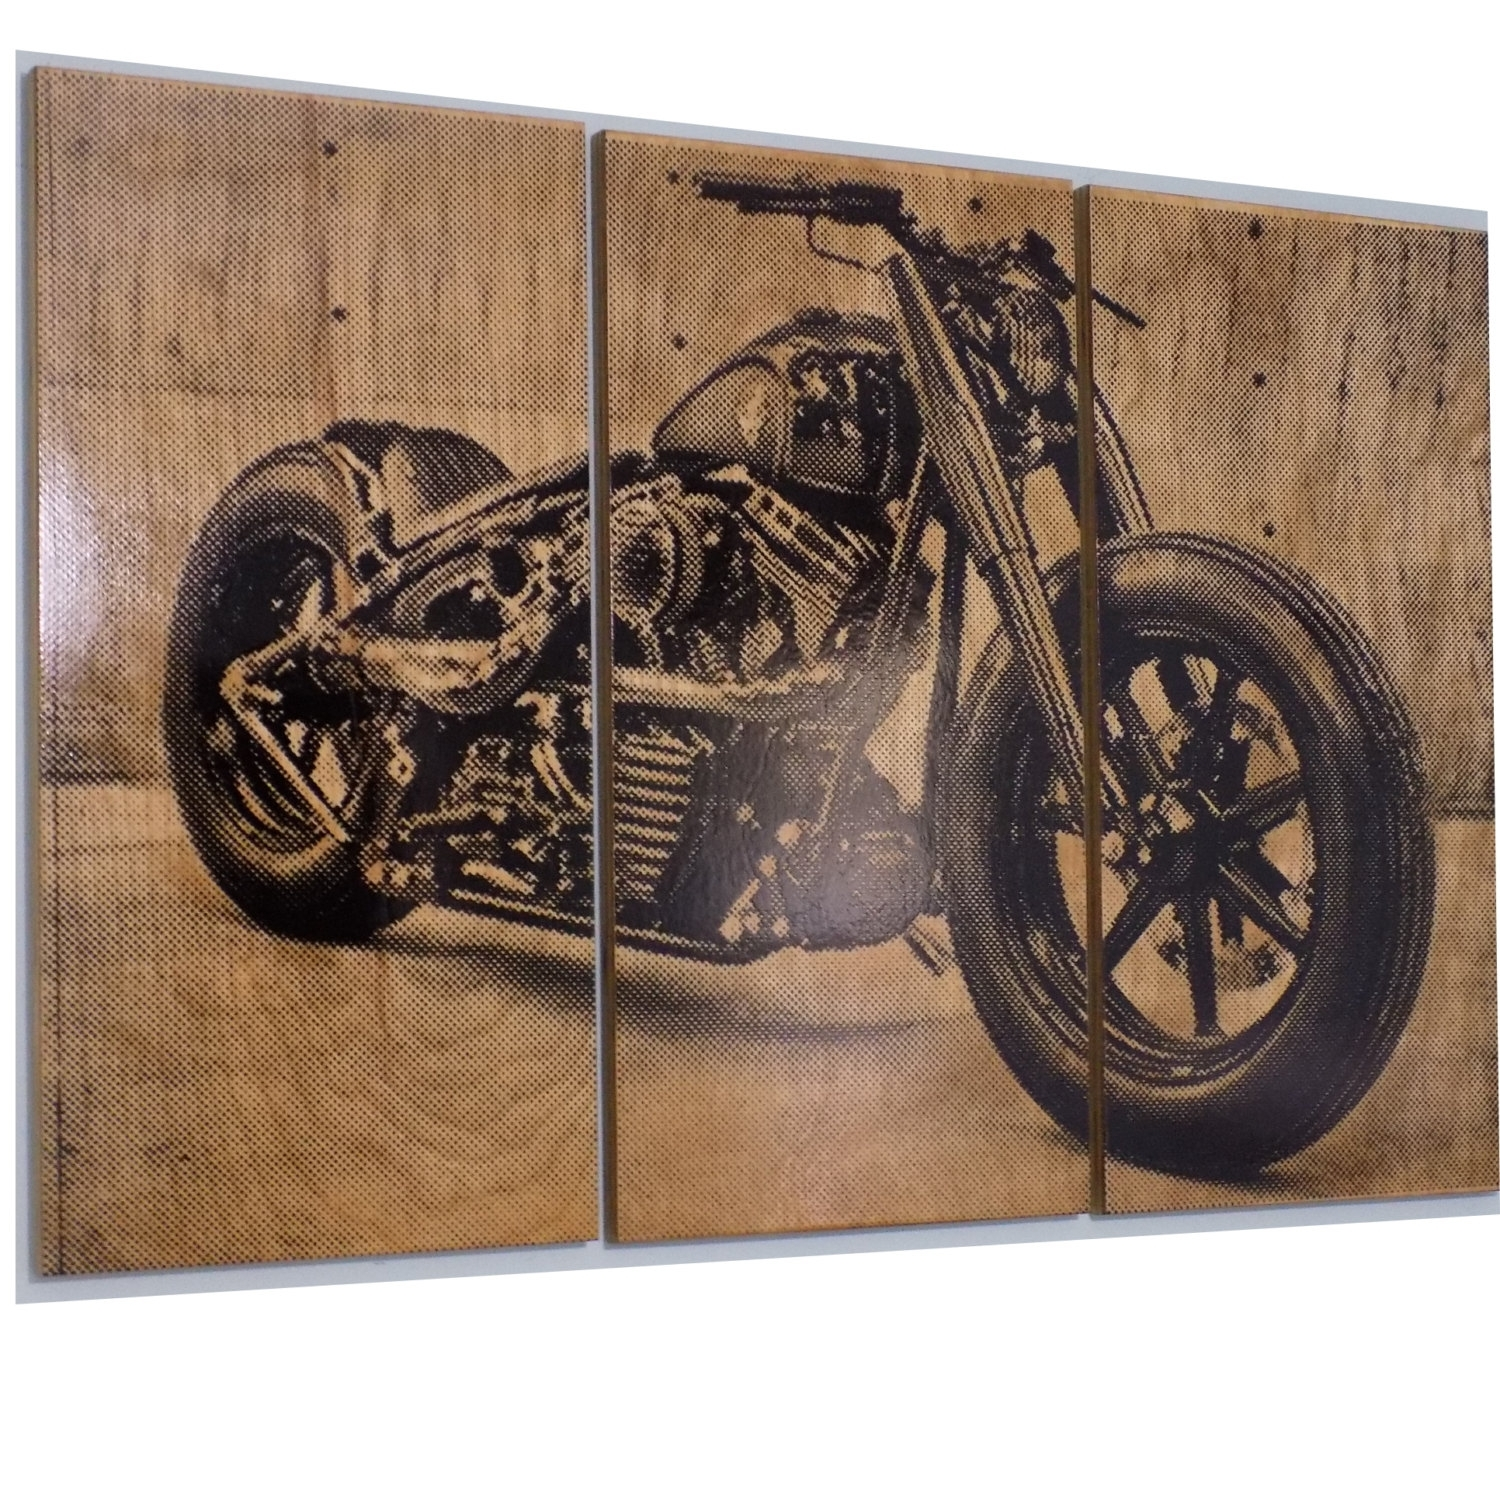 Harley Davidson Fatboy / Softail / Motorcycle / Bike Print, Harley Throughout Best And Newest Harley Davidson Wall Art (Gallery 18 of 20)